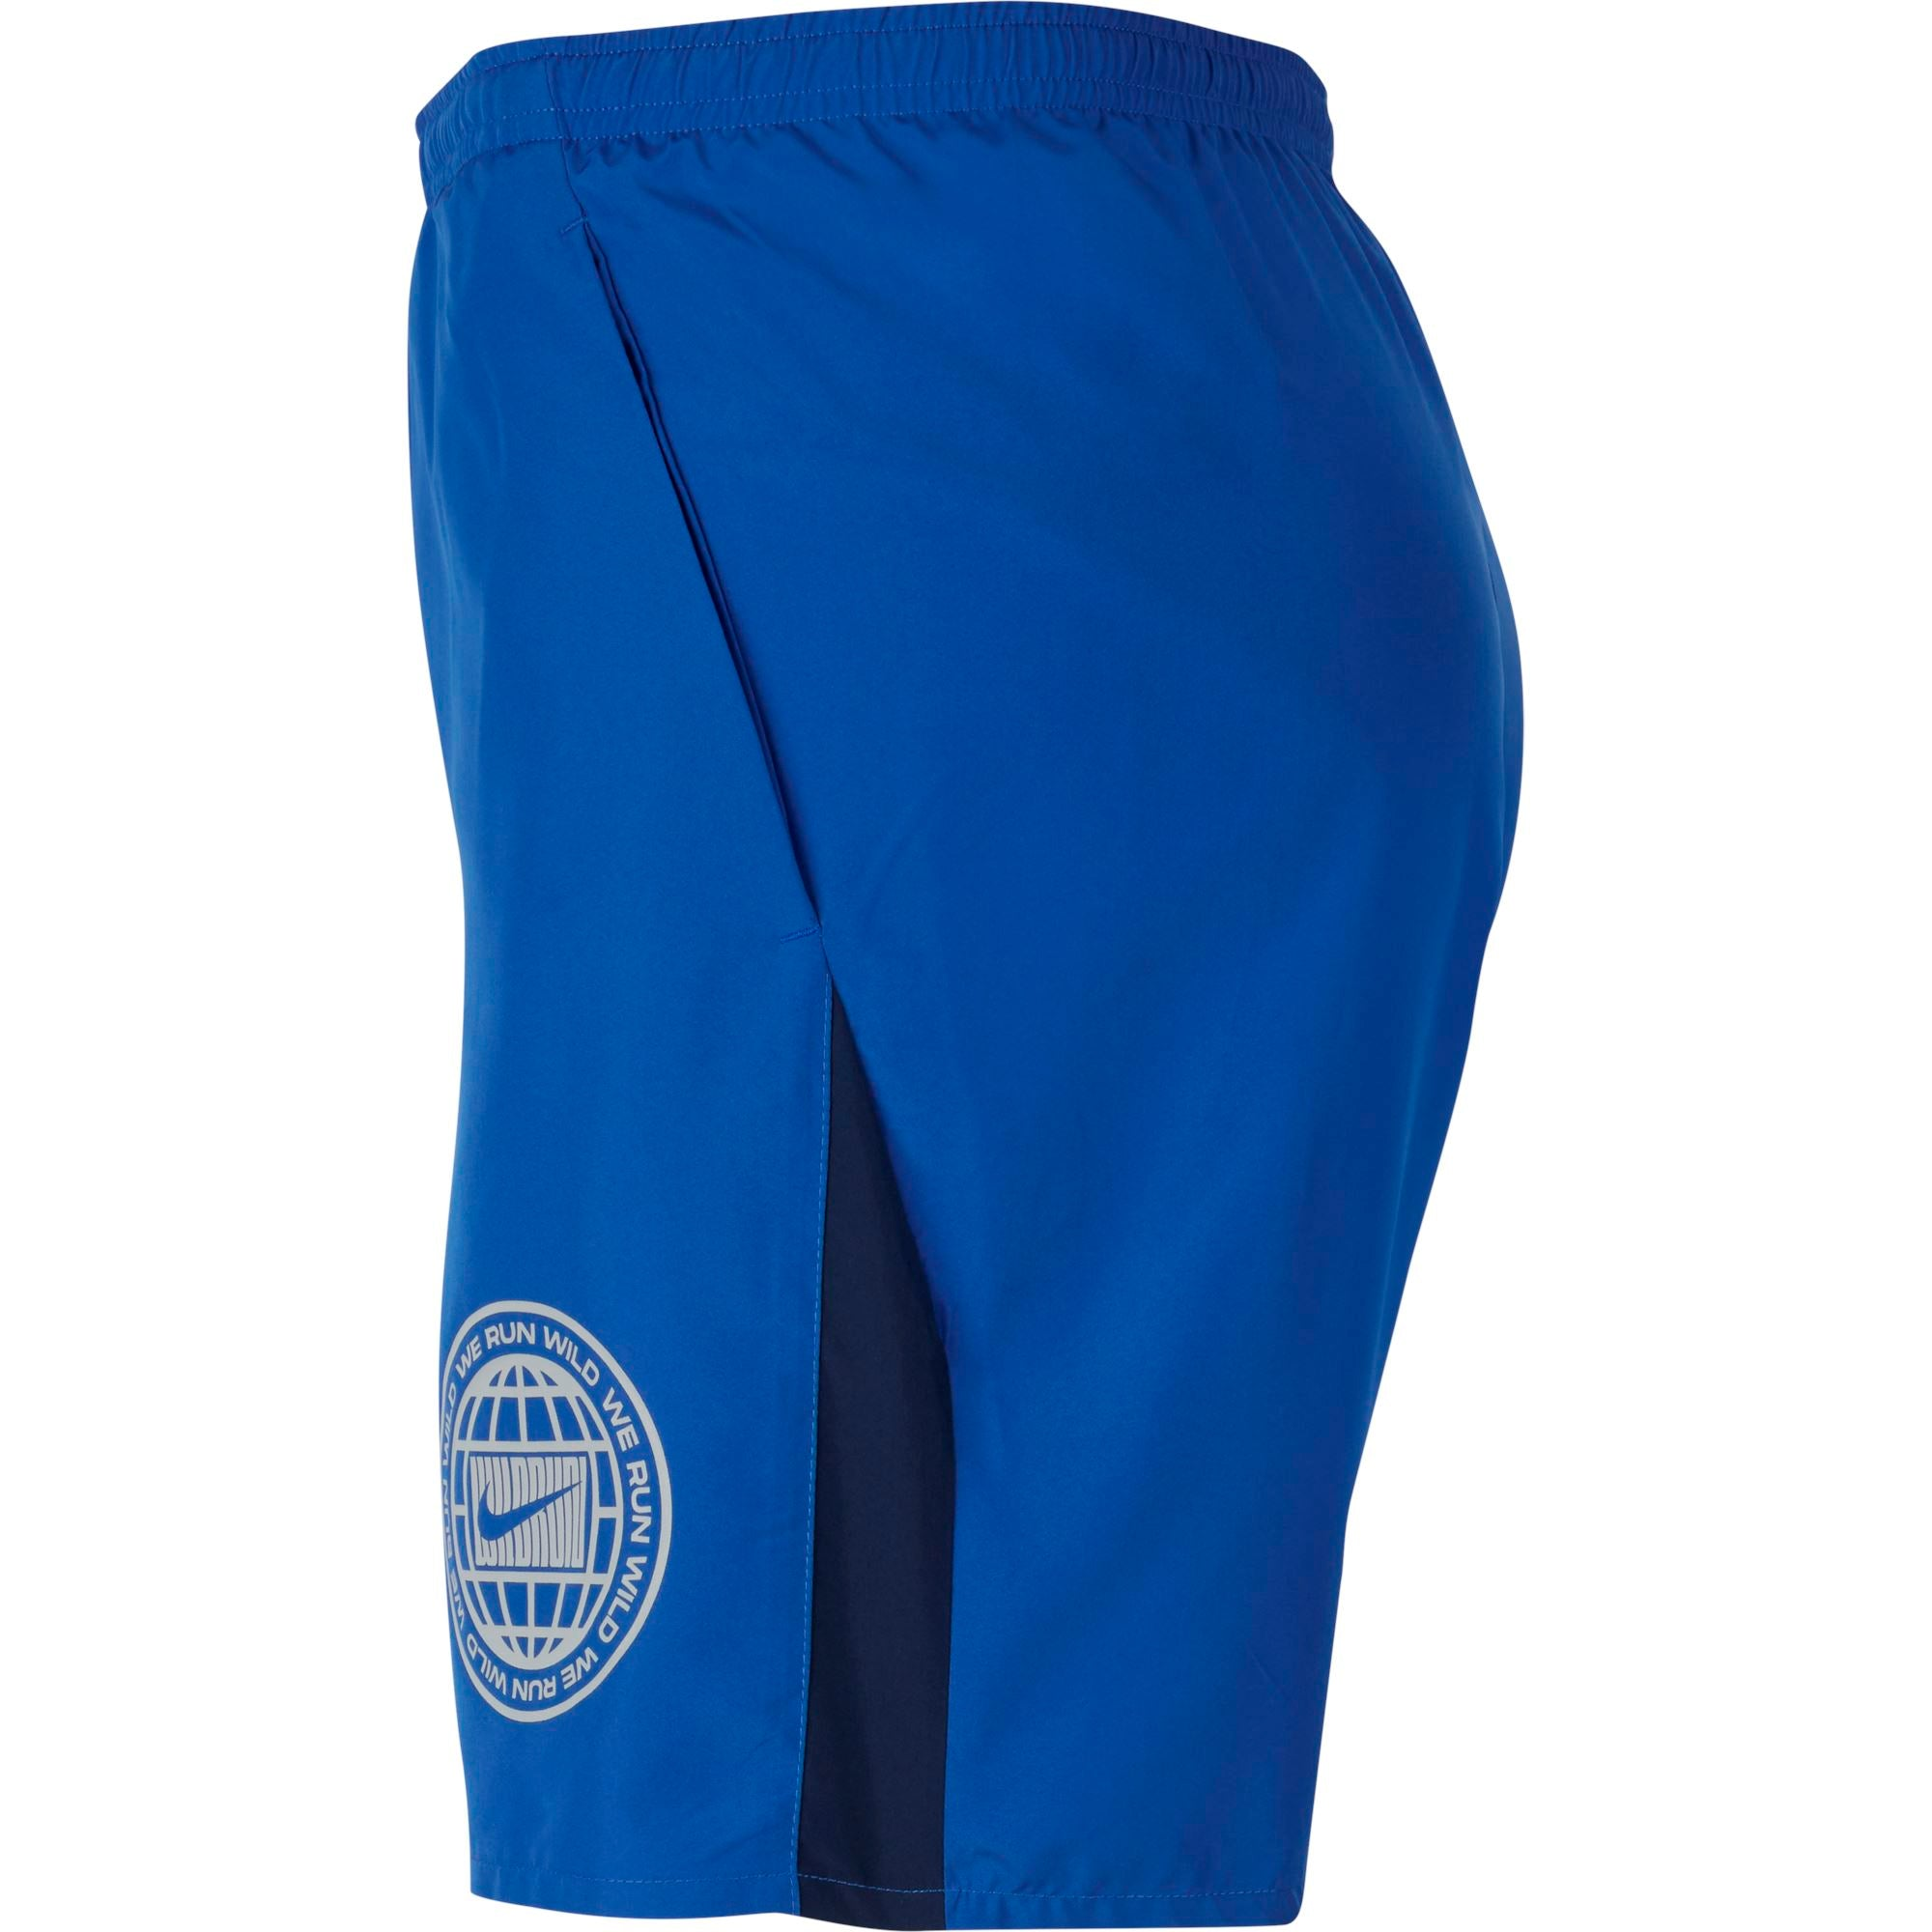 Nike Men's Dri-FIT Wild Run Short - Astronomy Blue/Reflective Silver SP-ApparelShorts-Mens Nike